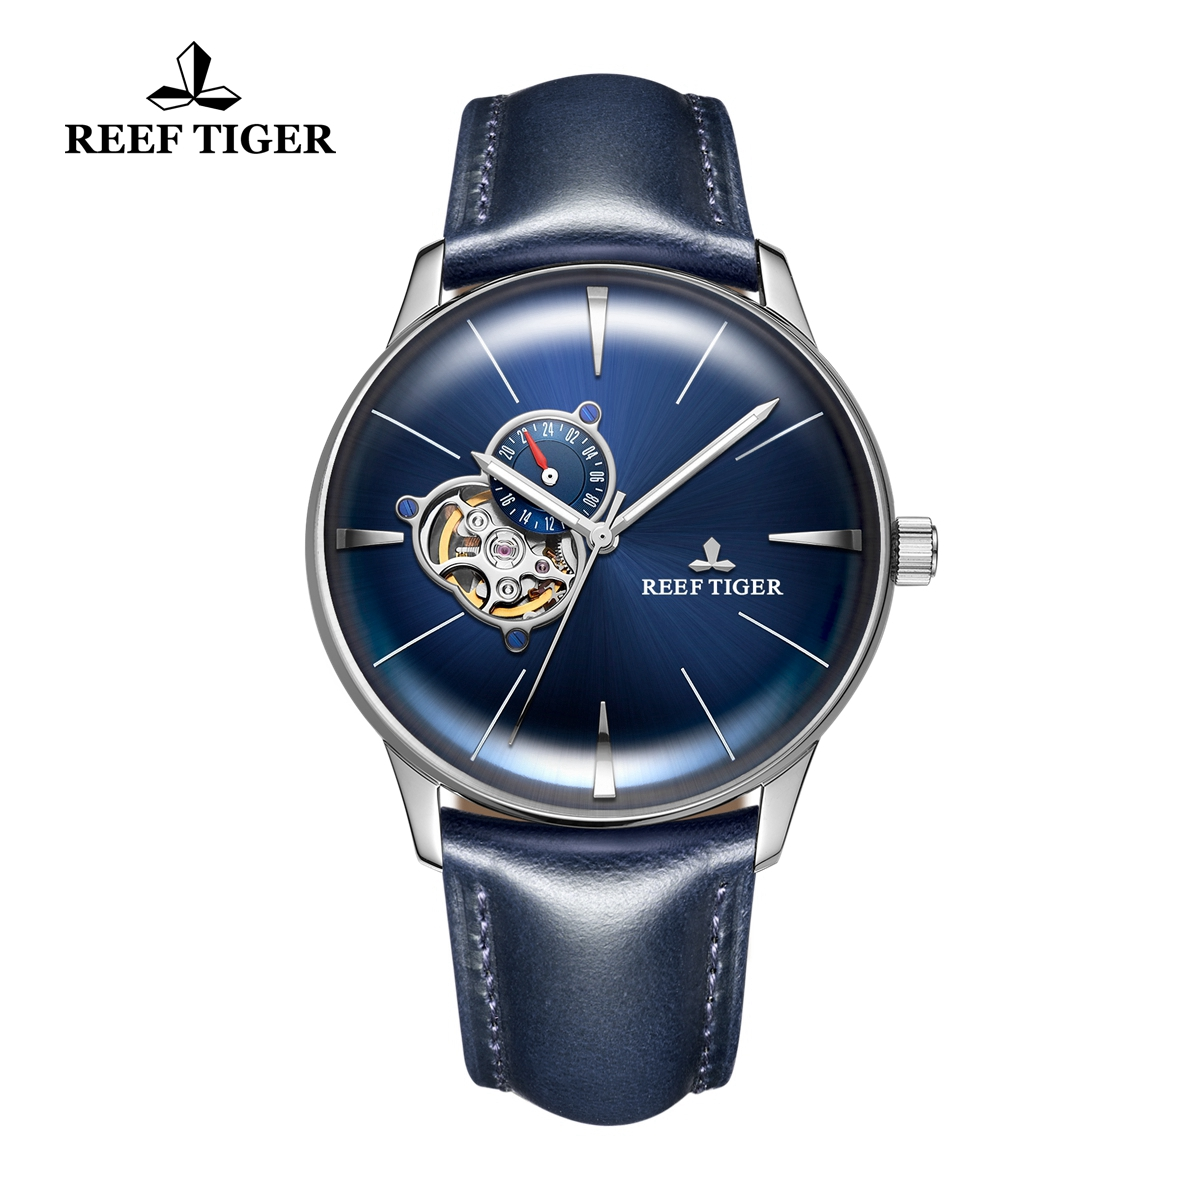 Reef Tiger Classic Glory Men's Automatic Watch Leather Strap Blue Dial Watch RGA8239-YLLH